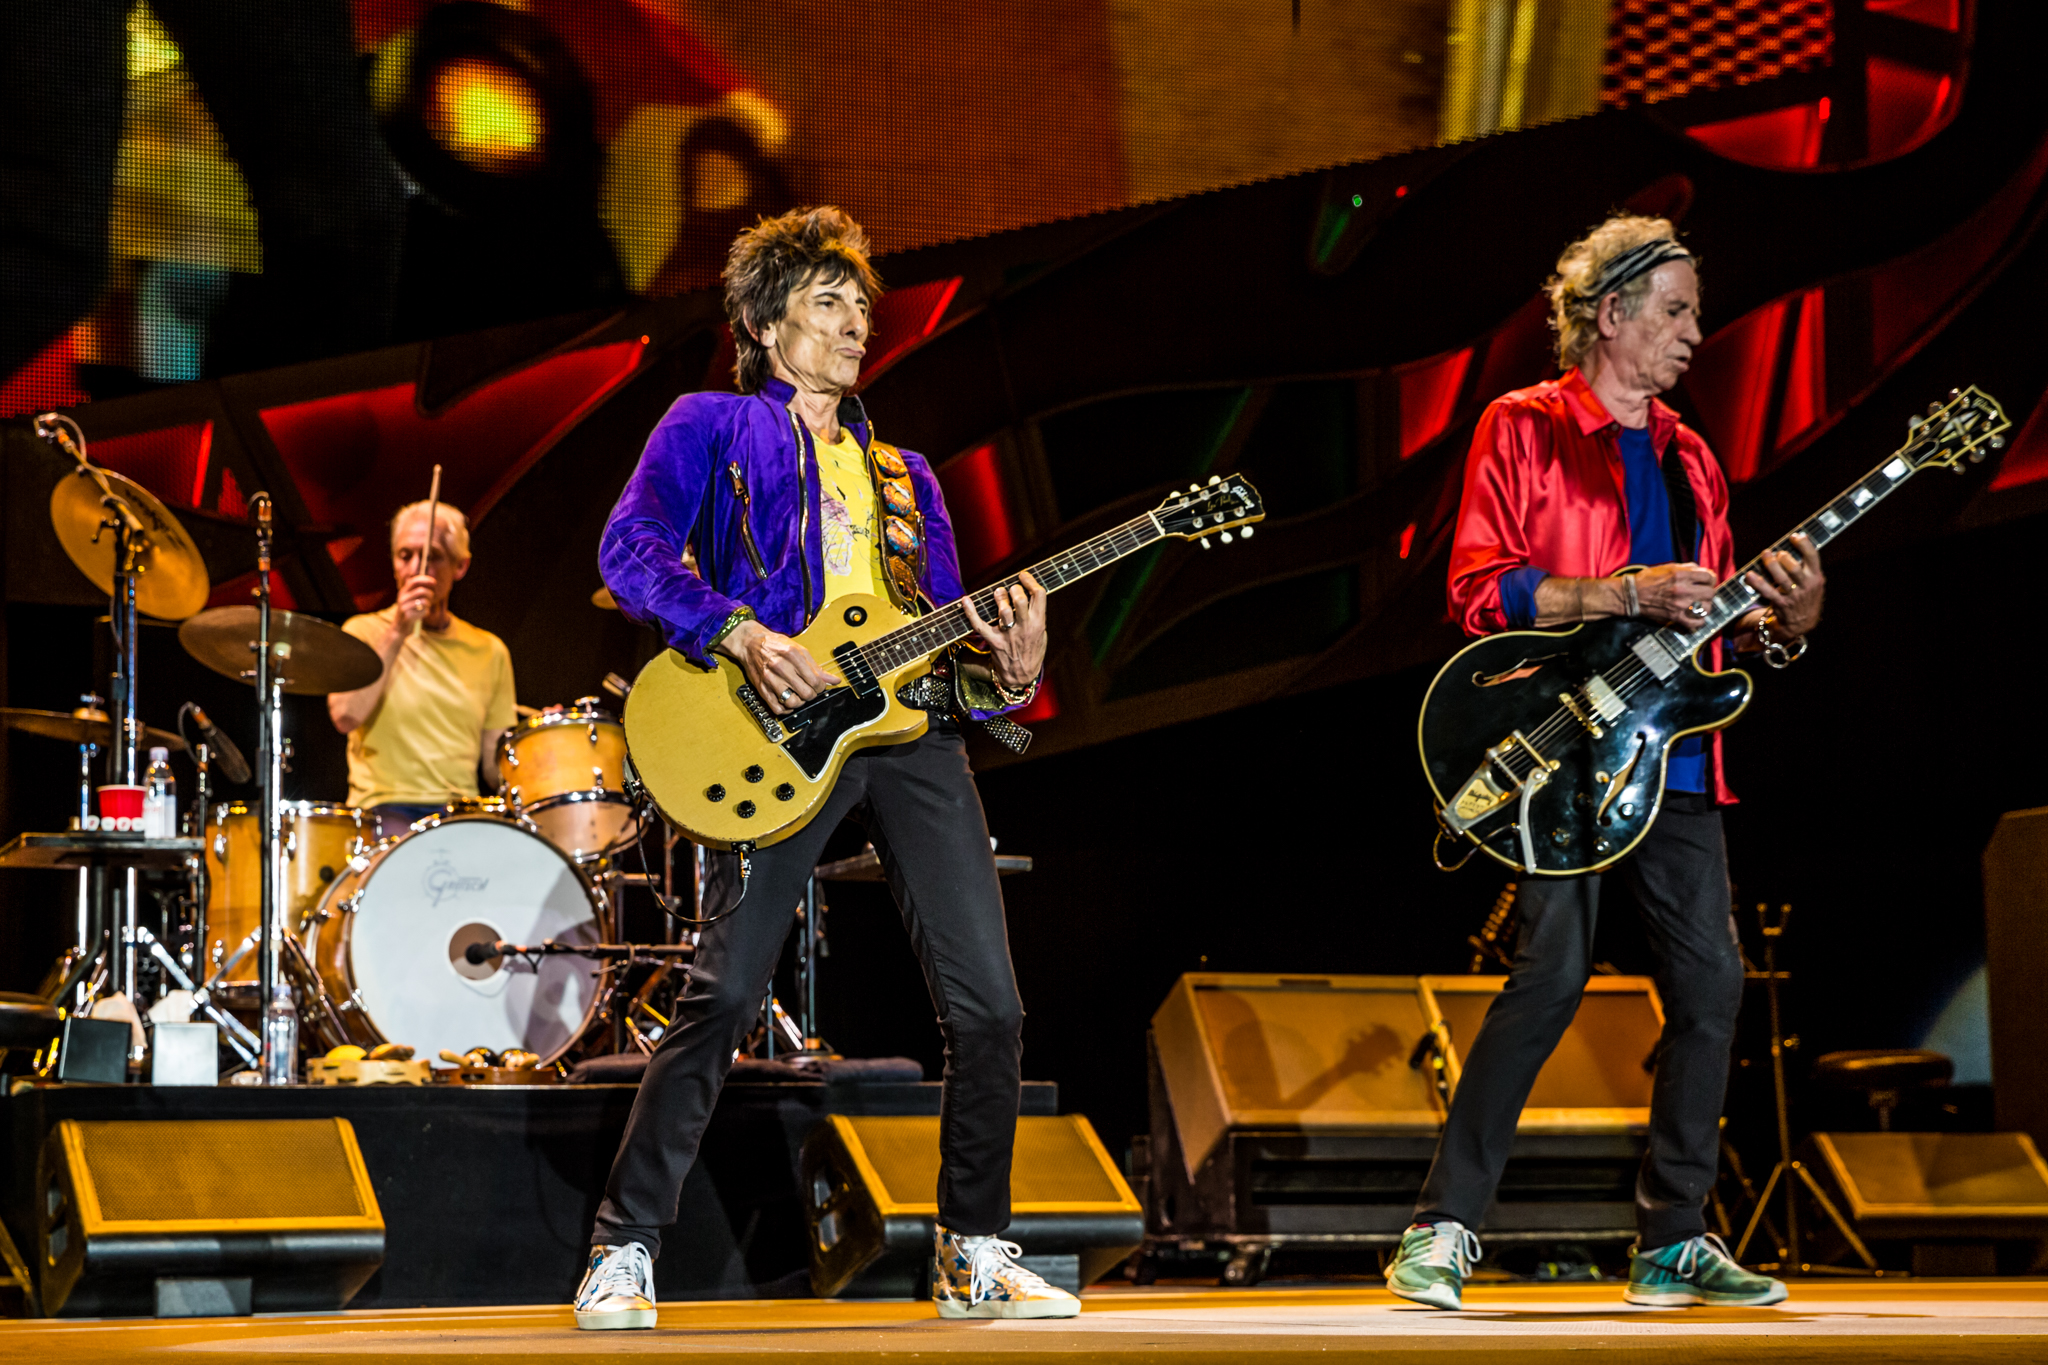 RollingStones_GATech15_iWally-6.jpg